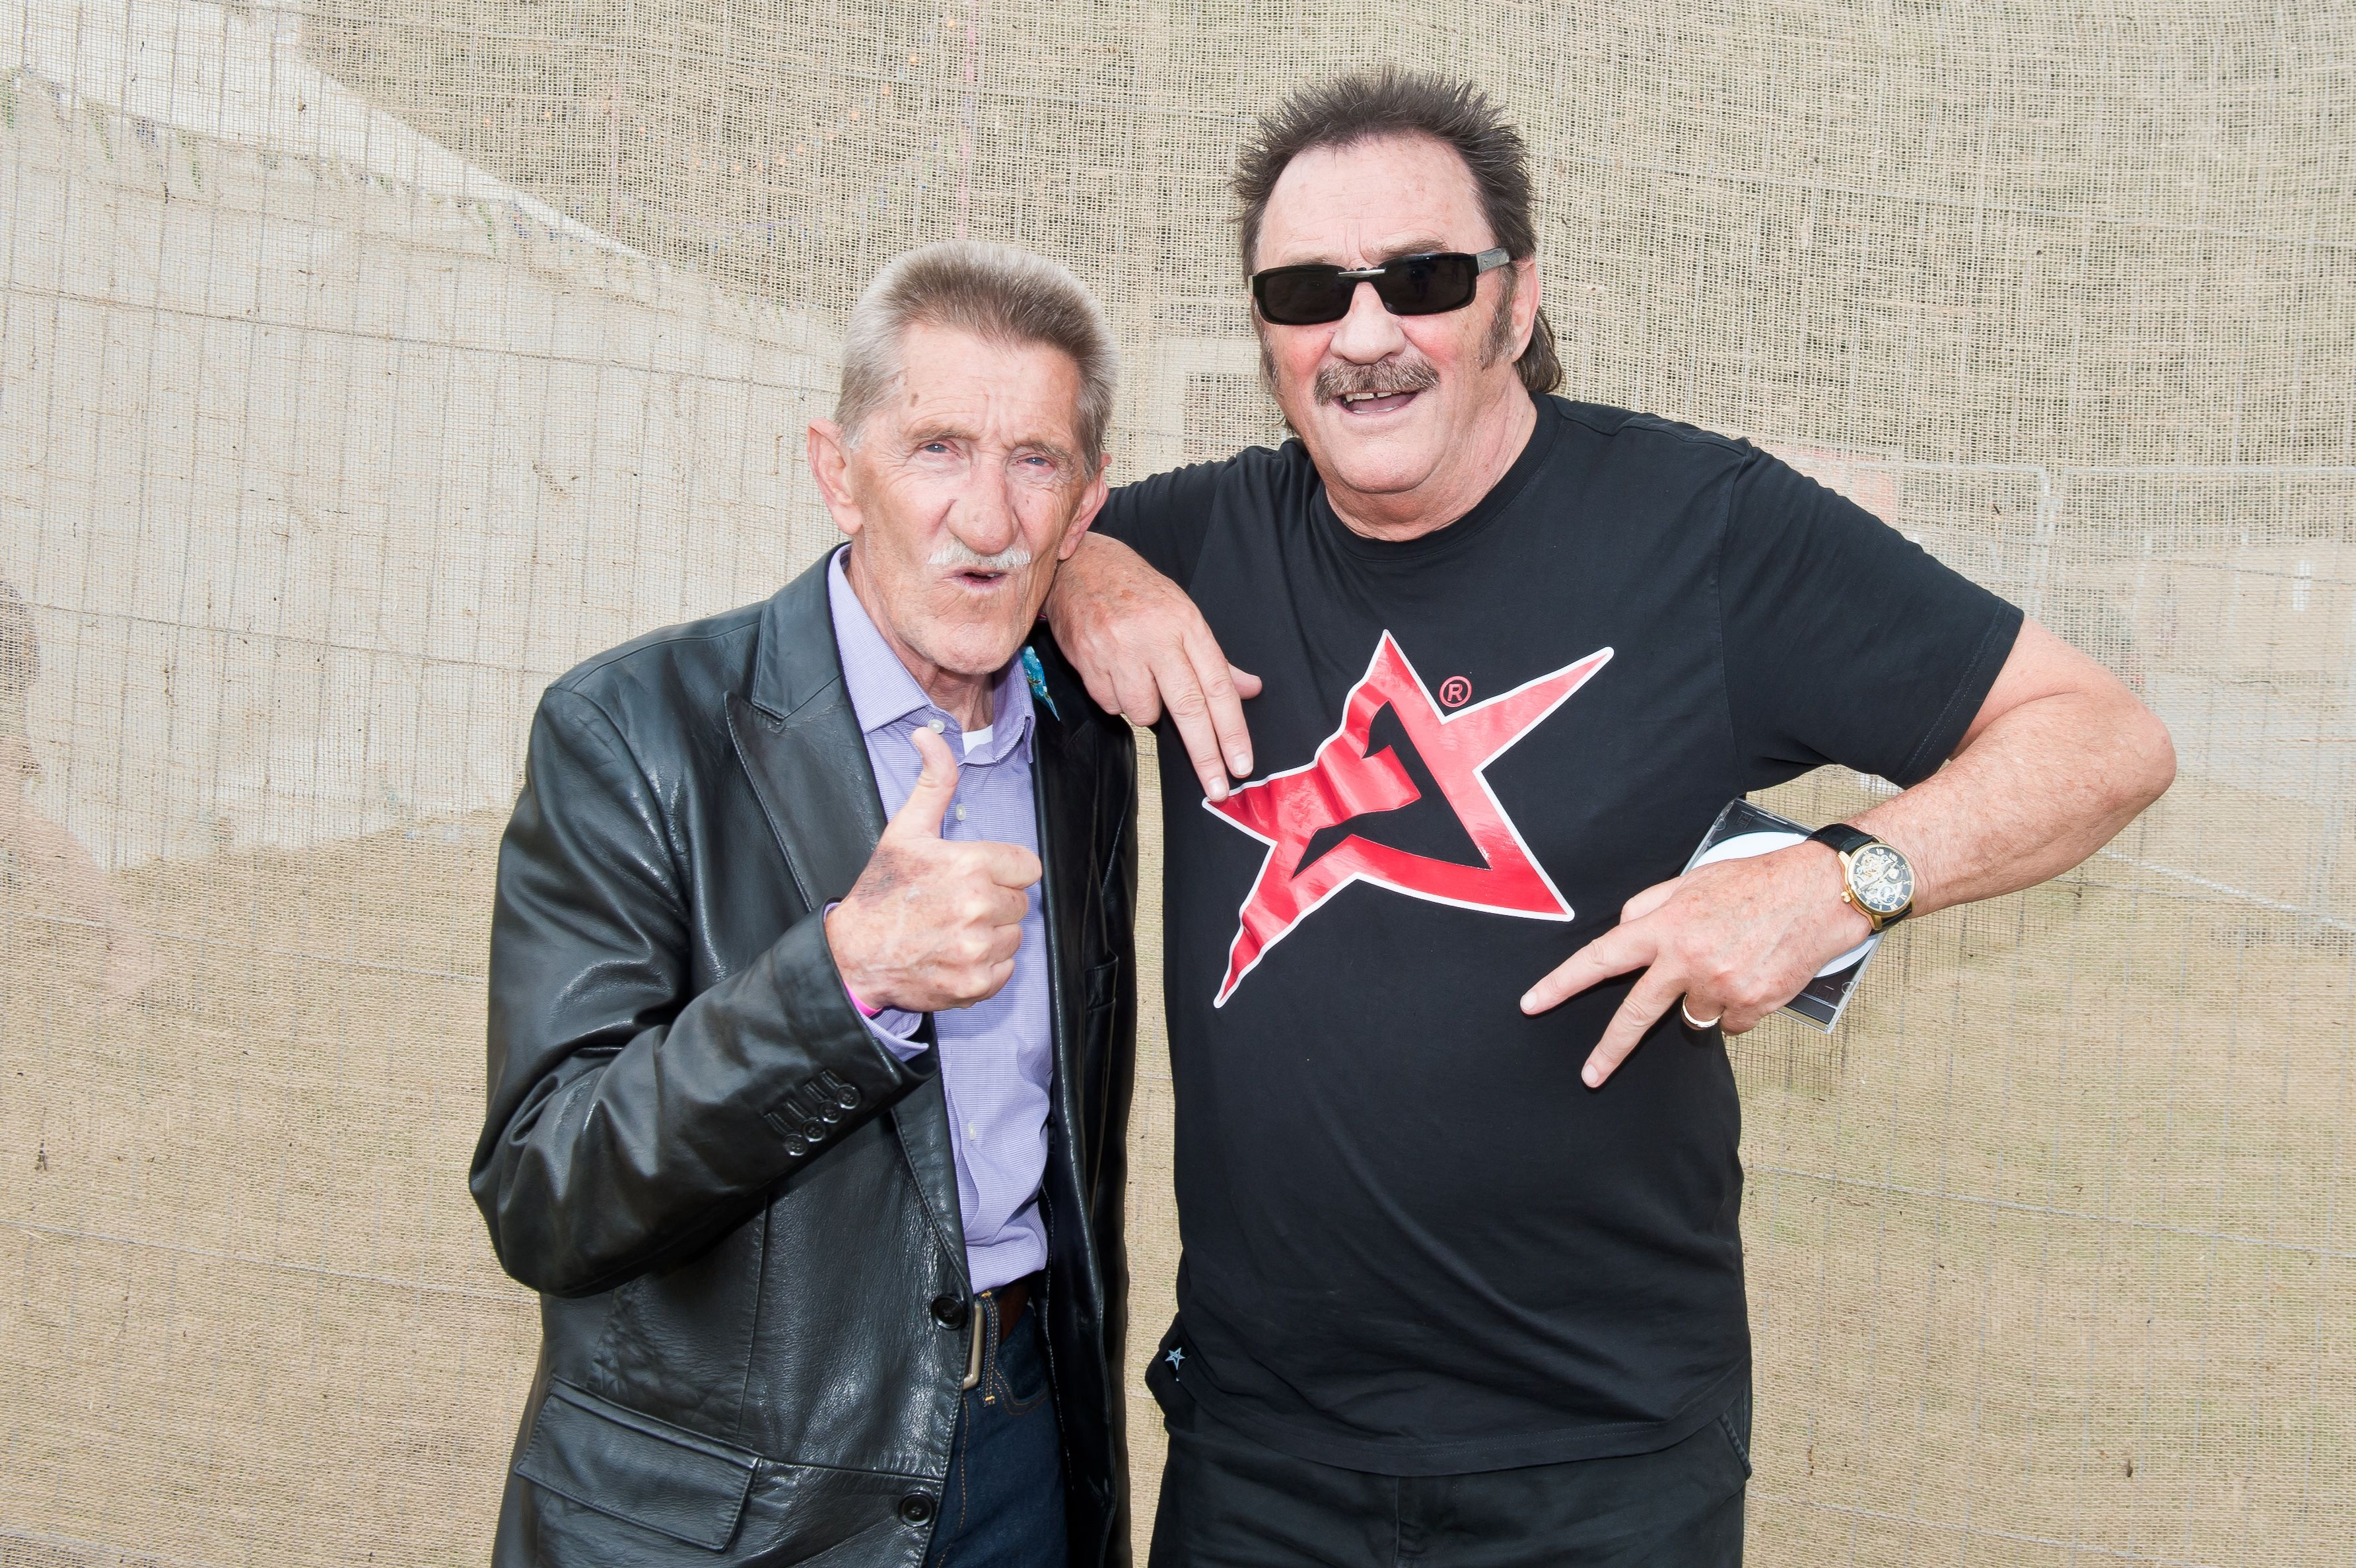 Wait, are the Chuckle Brothers joining the cast of Benidorm?!